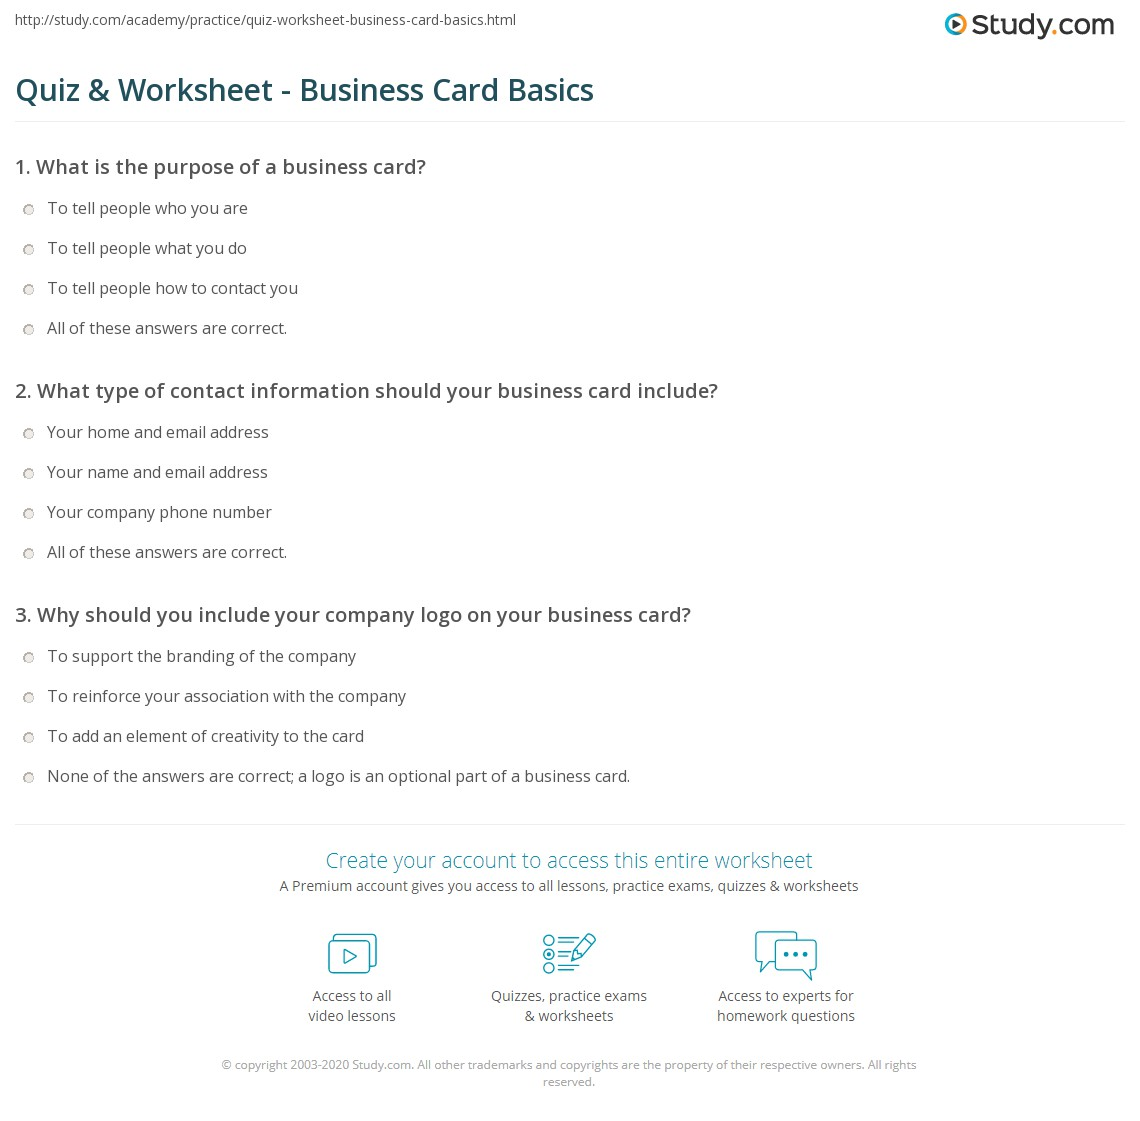 Quiz & Worksheet - Business Card Basics | Study.com